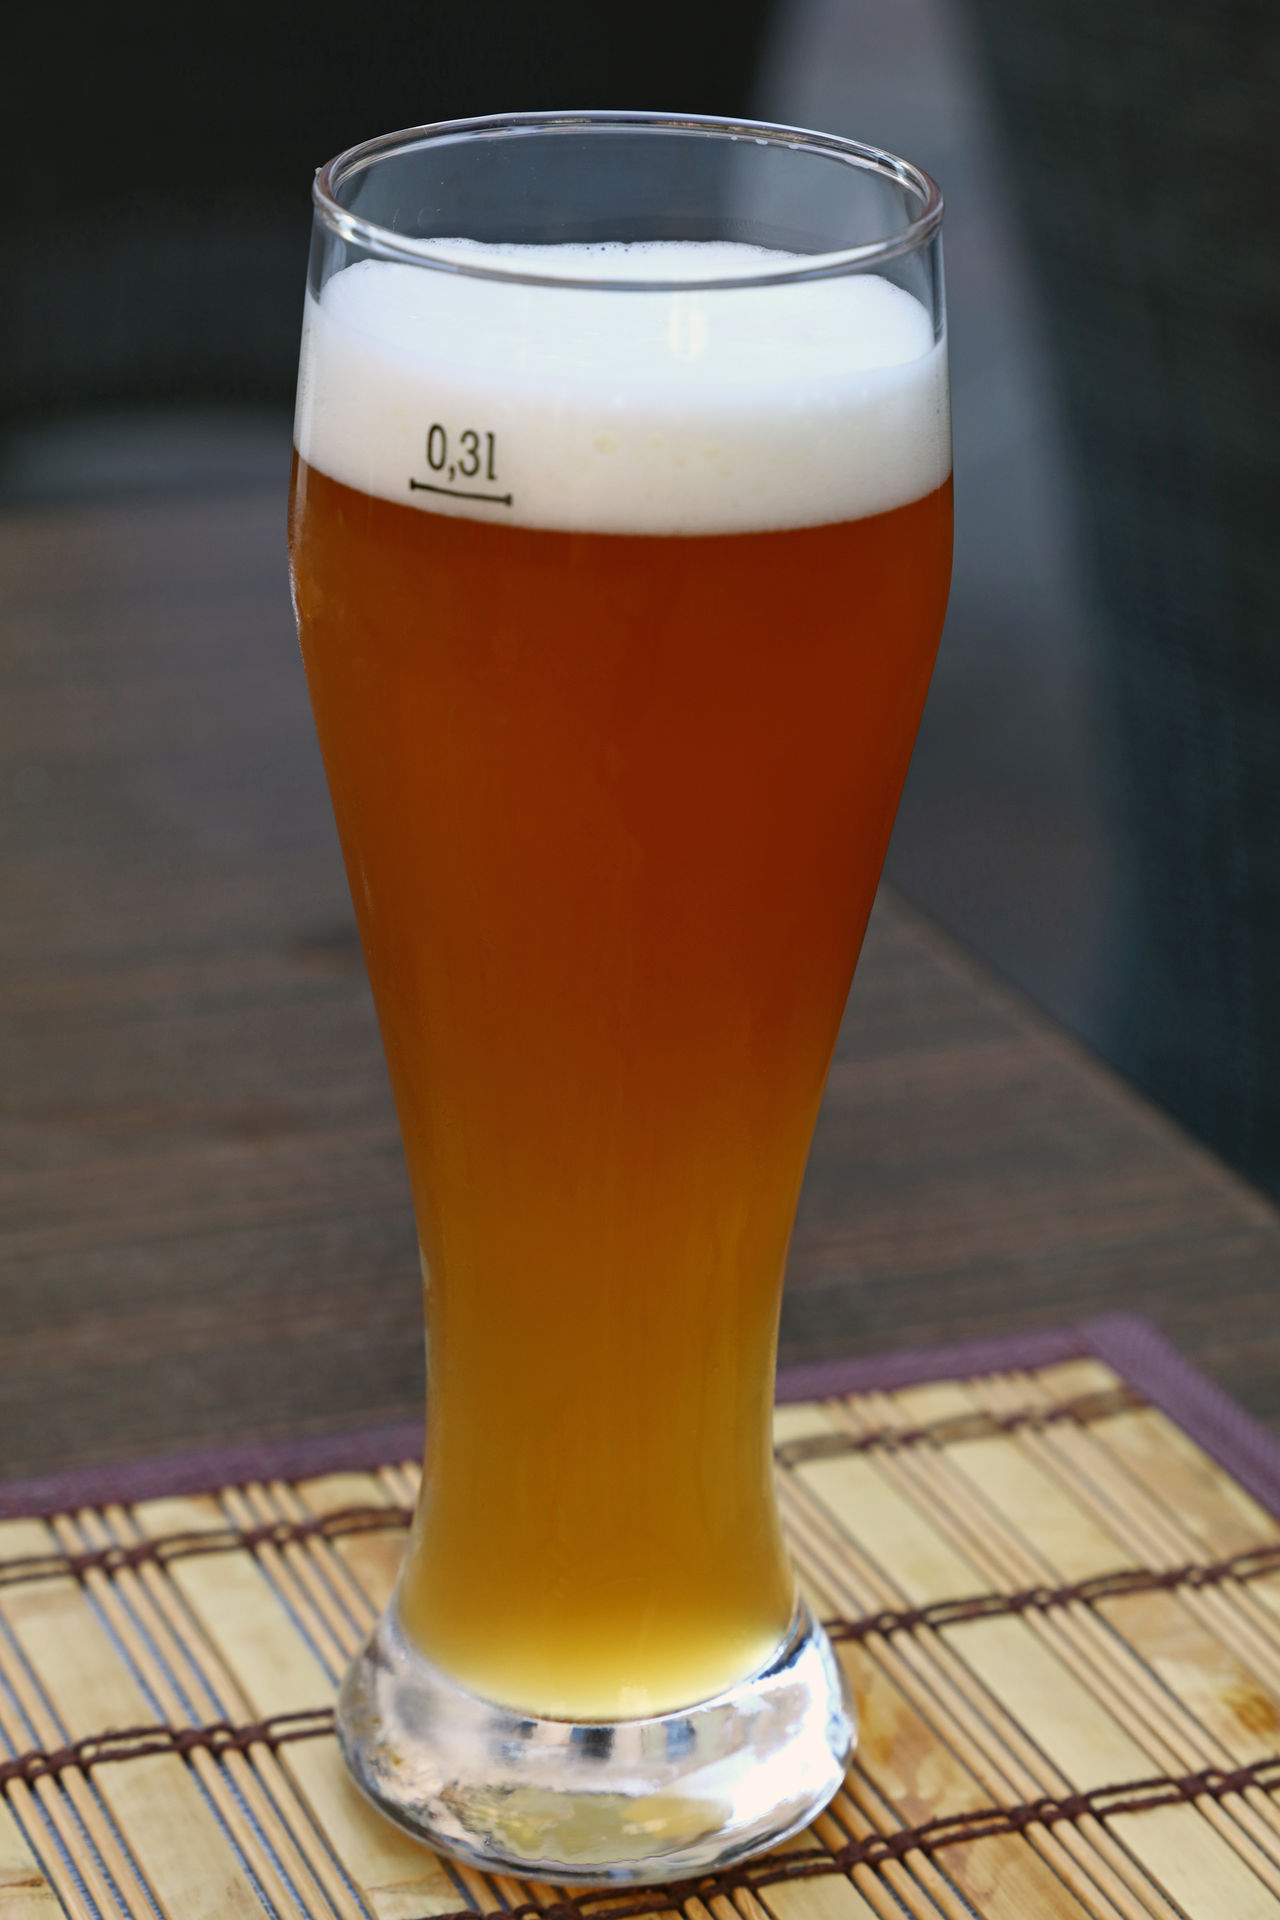 A glass of unfiltered wheat (weizen) beer on wooden table Ale Beer Beverage BIG Brewery Close-up Culture Draught Drink Europe Freshness Frothy Drink Full Glass Personal Perspective Refreshment Serving Size Small Table Time Traditional Unfiltered Weizen Weizenbier Wheat